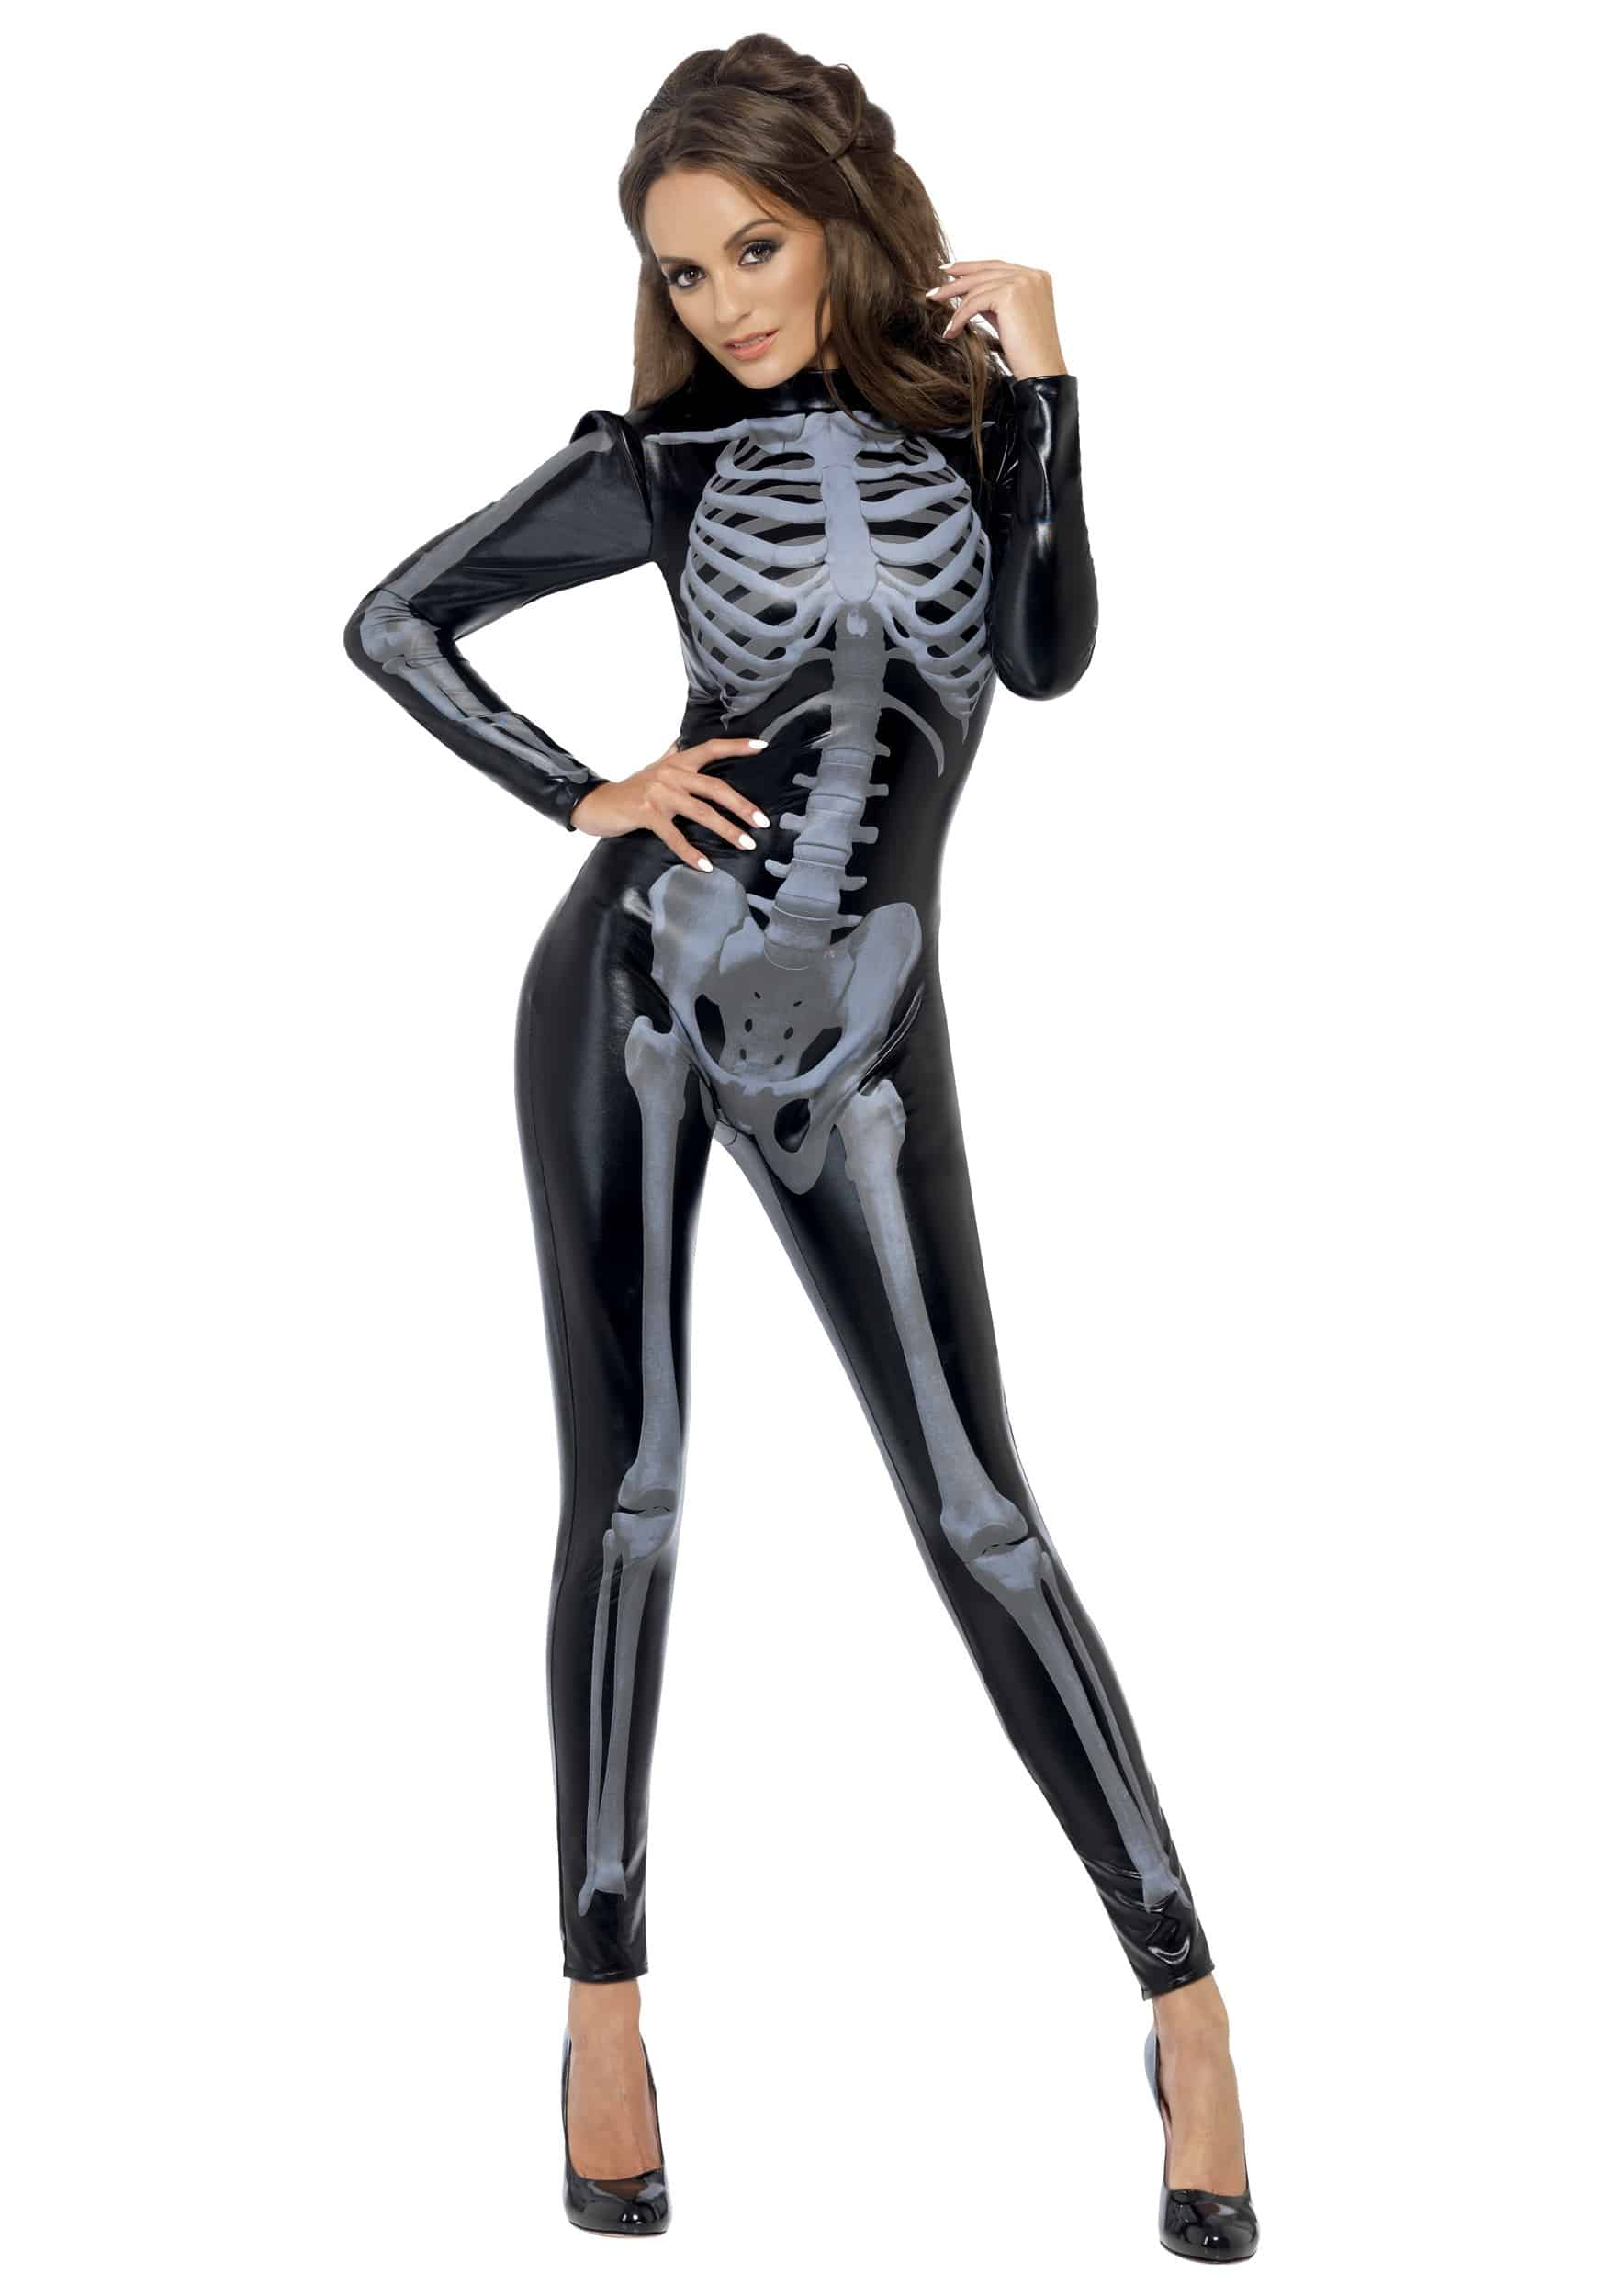 Show the world that you're sexy down to the bones.